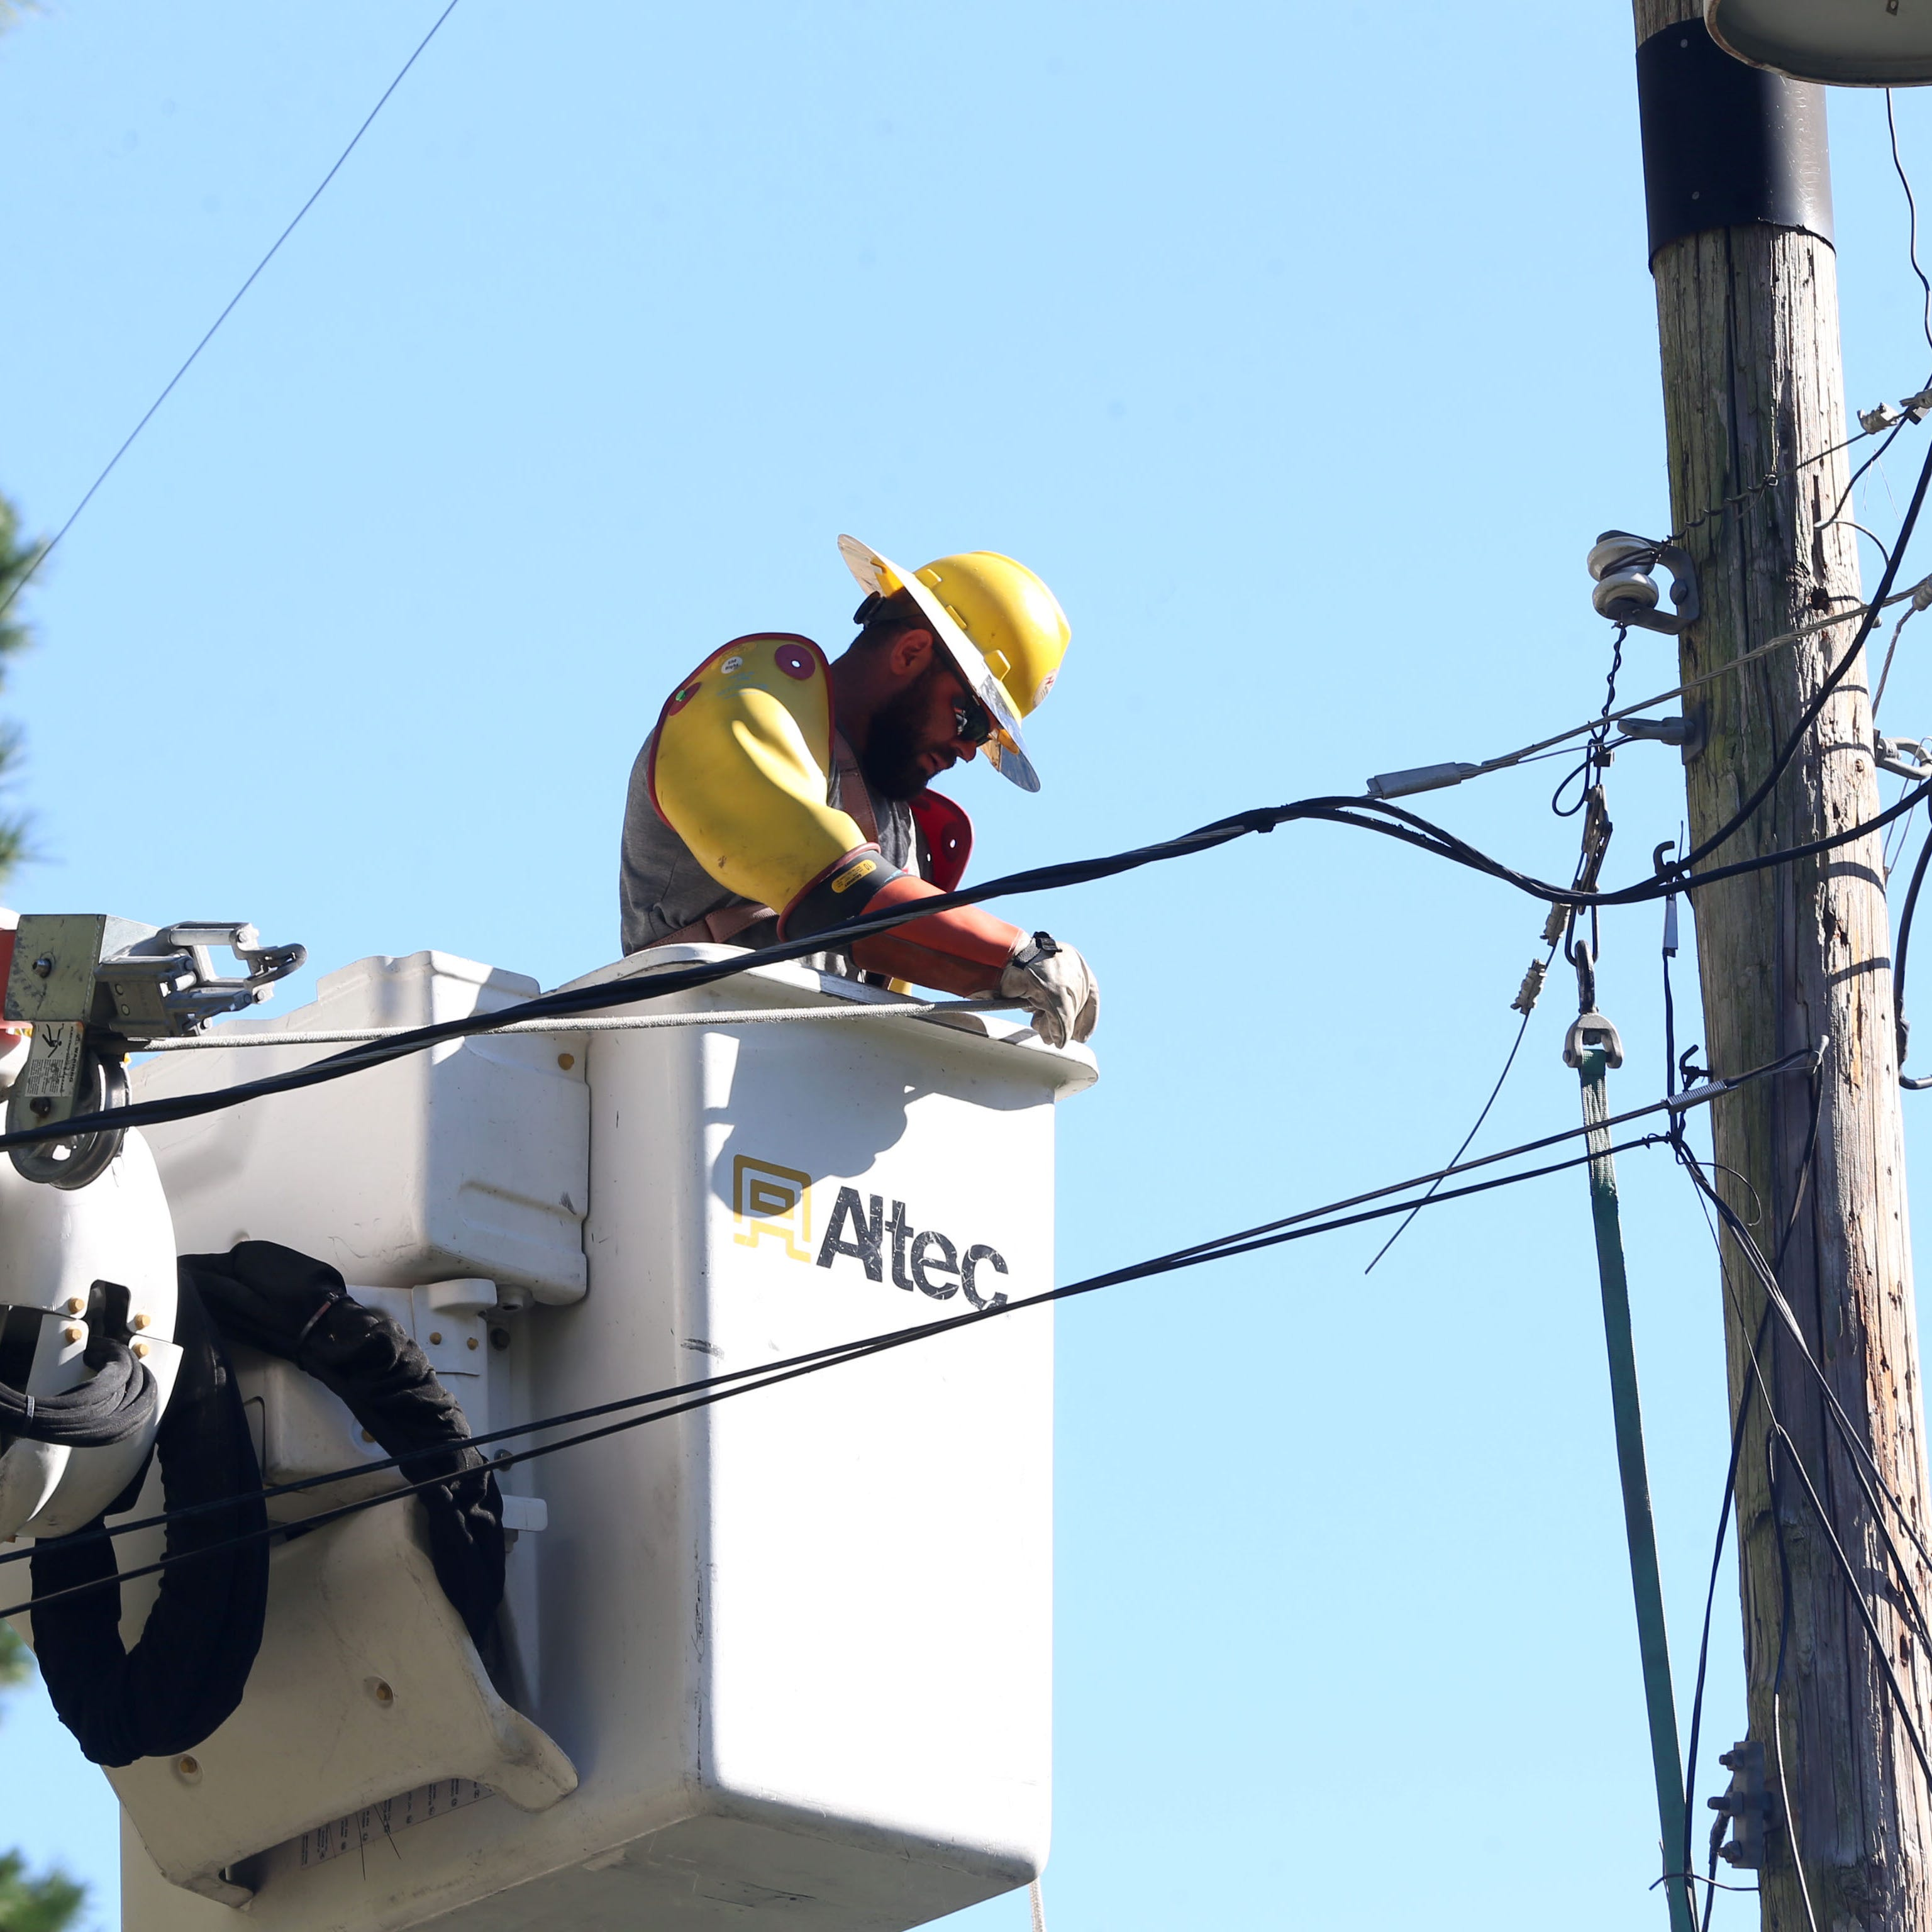 Tallahassee power restoration to be 'substantially complete' by Wednesday, a week after Hurricane Michael